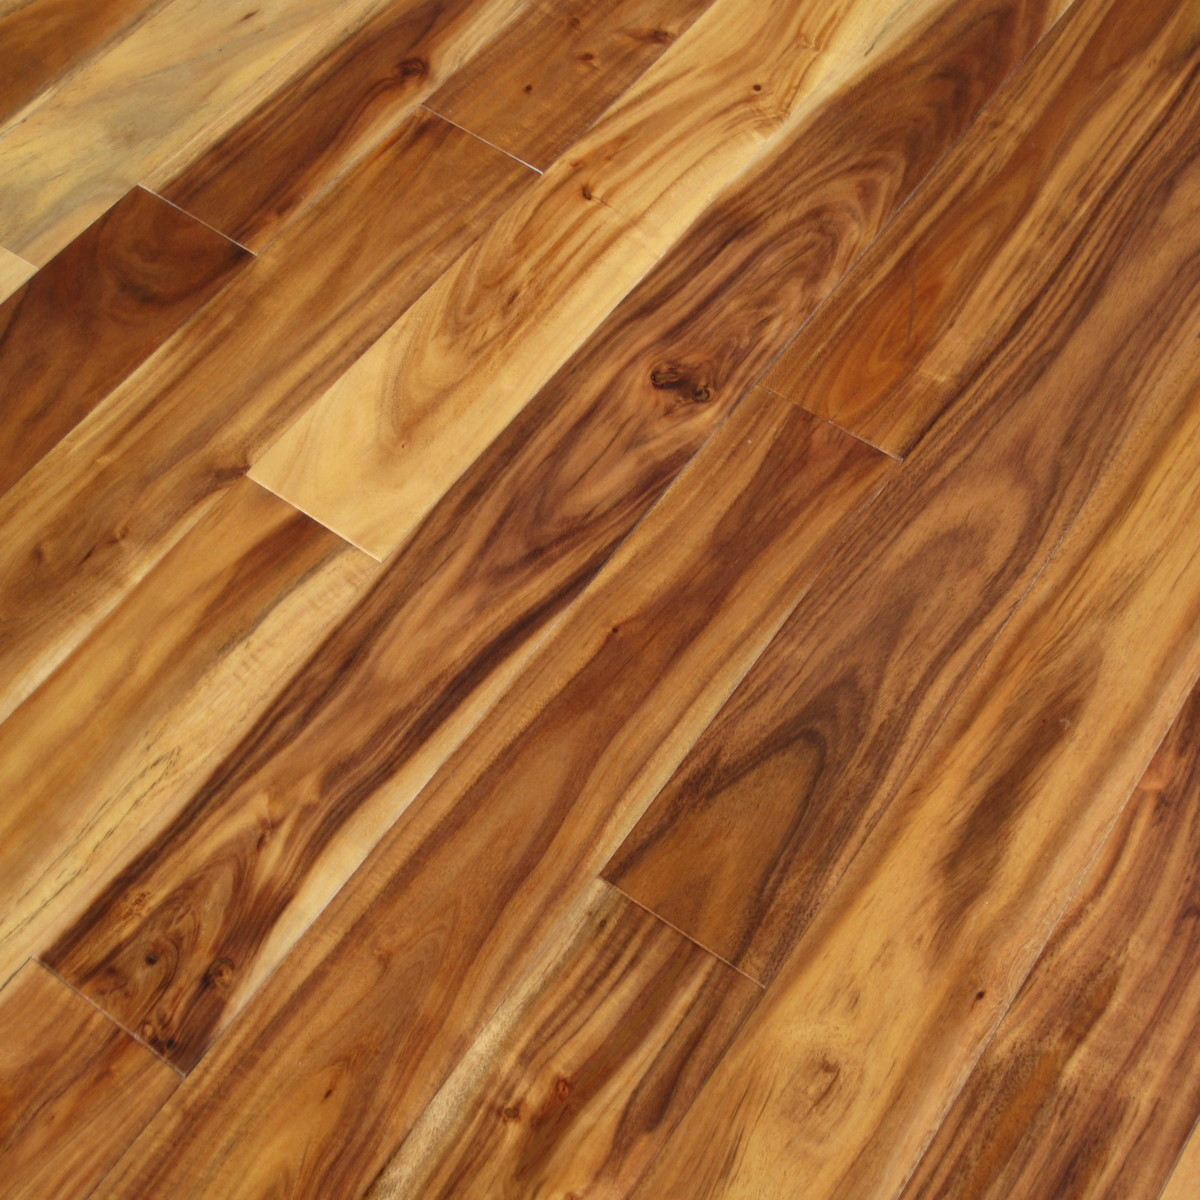 Acacia natural plank hardwood flooring unique wood floors for Natural floors